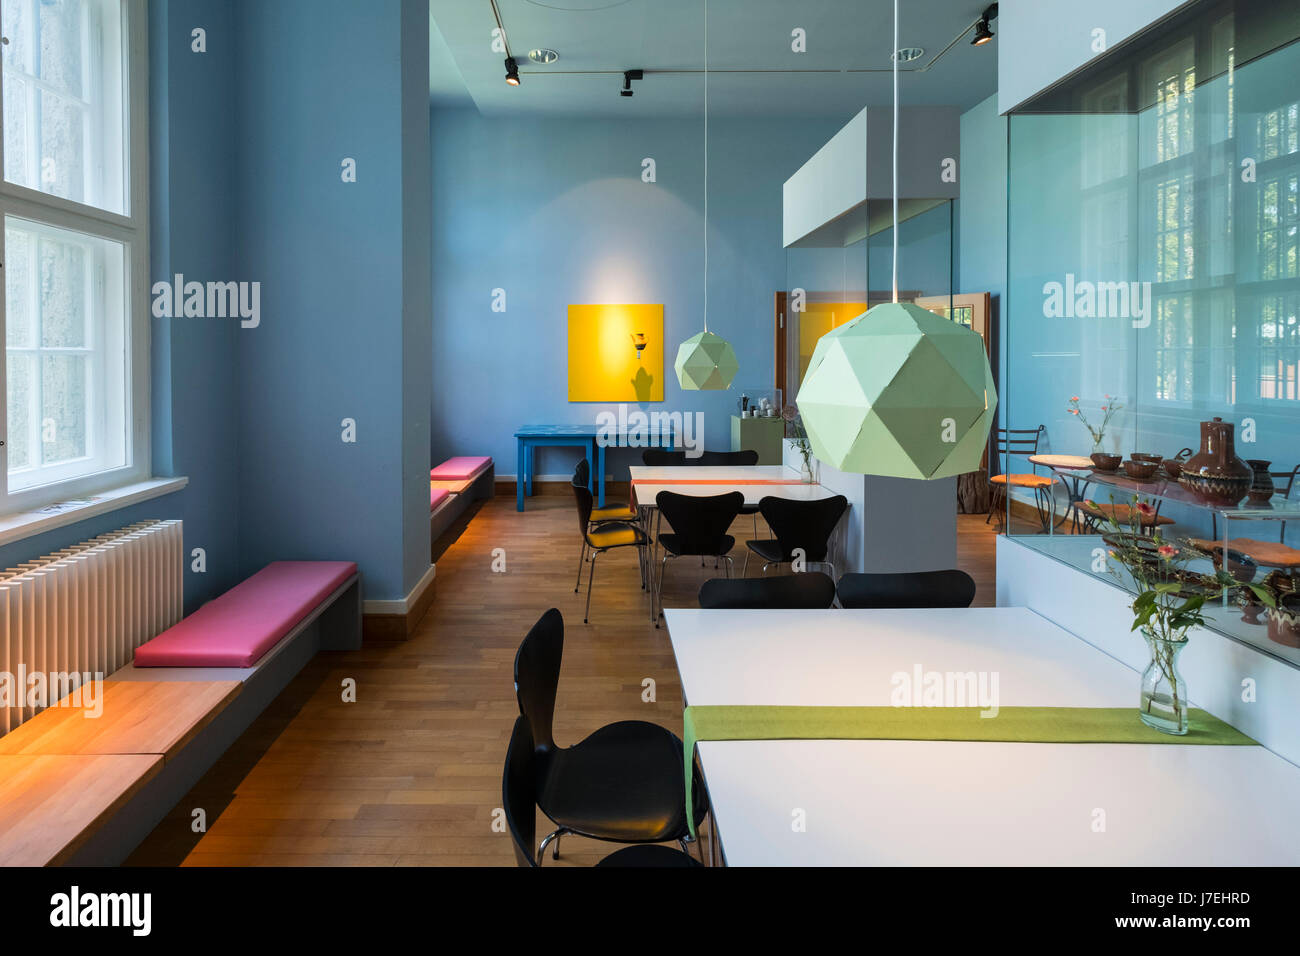 Interior of cafe at Museum of European Cultures in Dahlem, Berlin, Germany - Stock Image